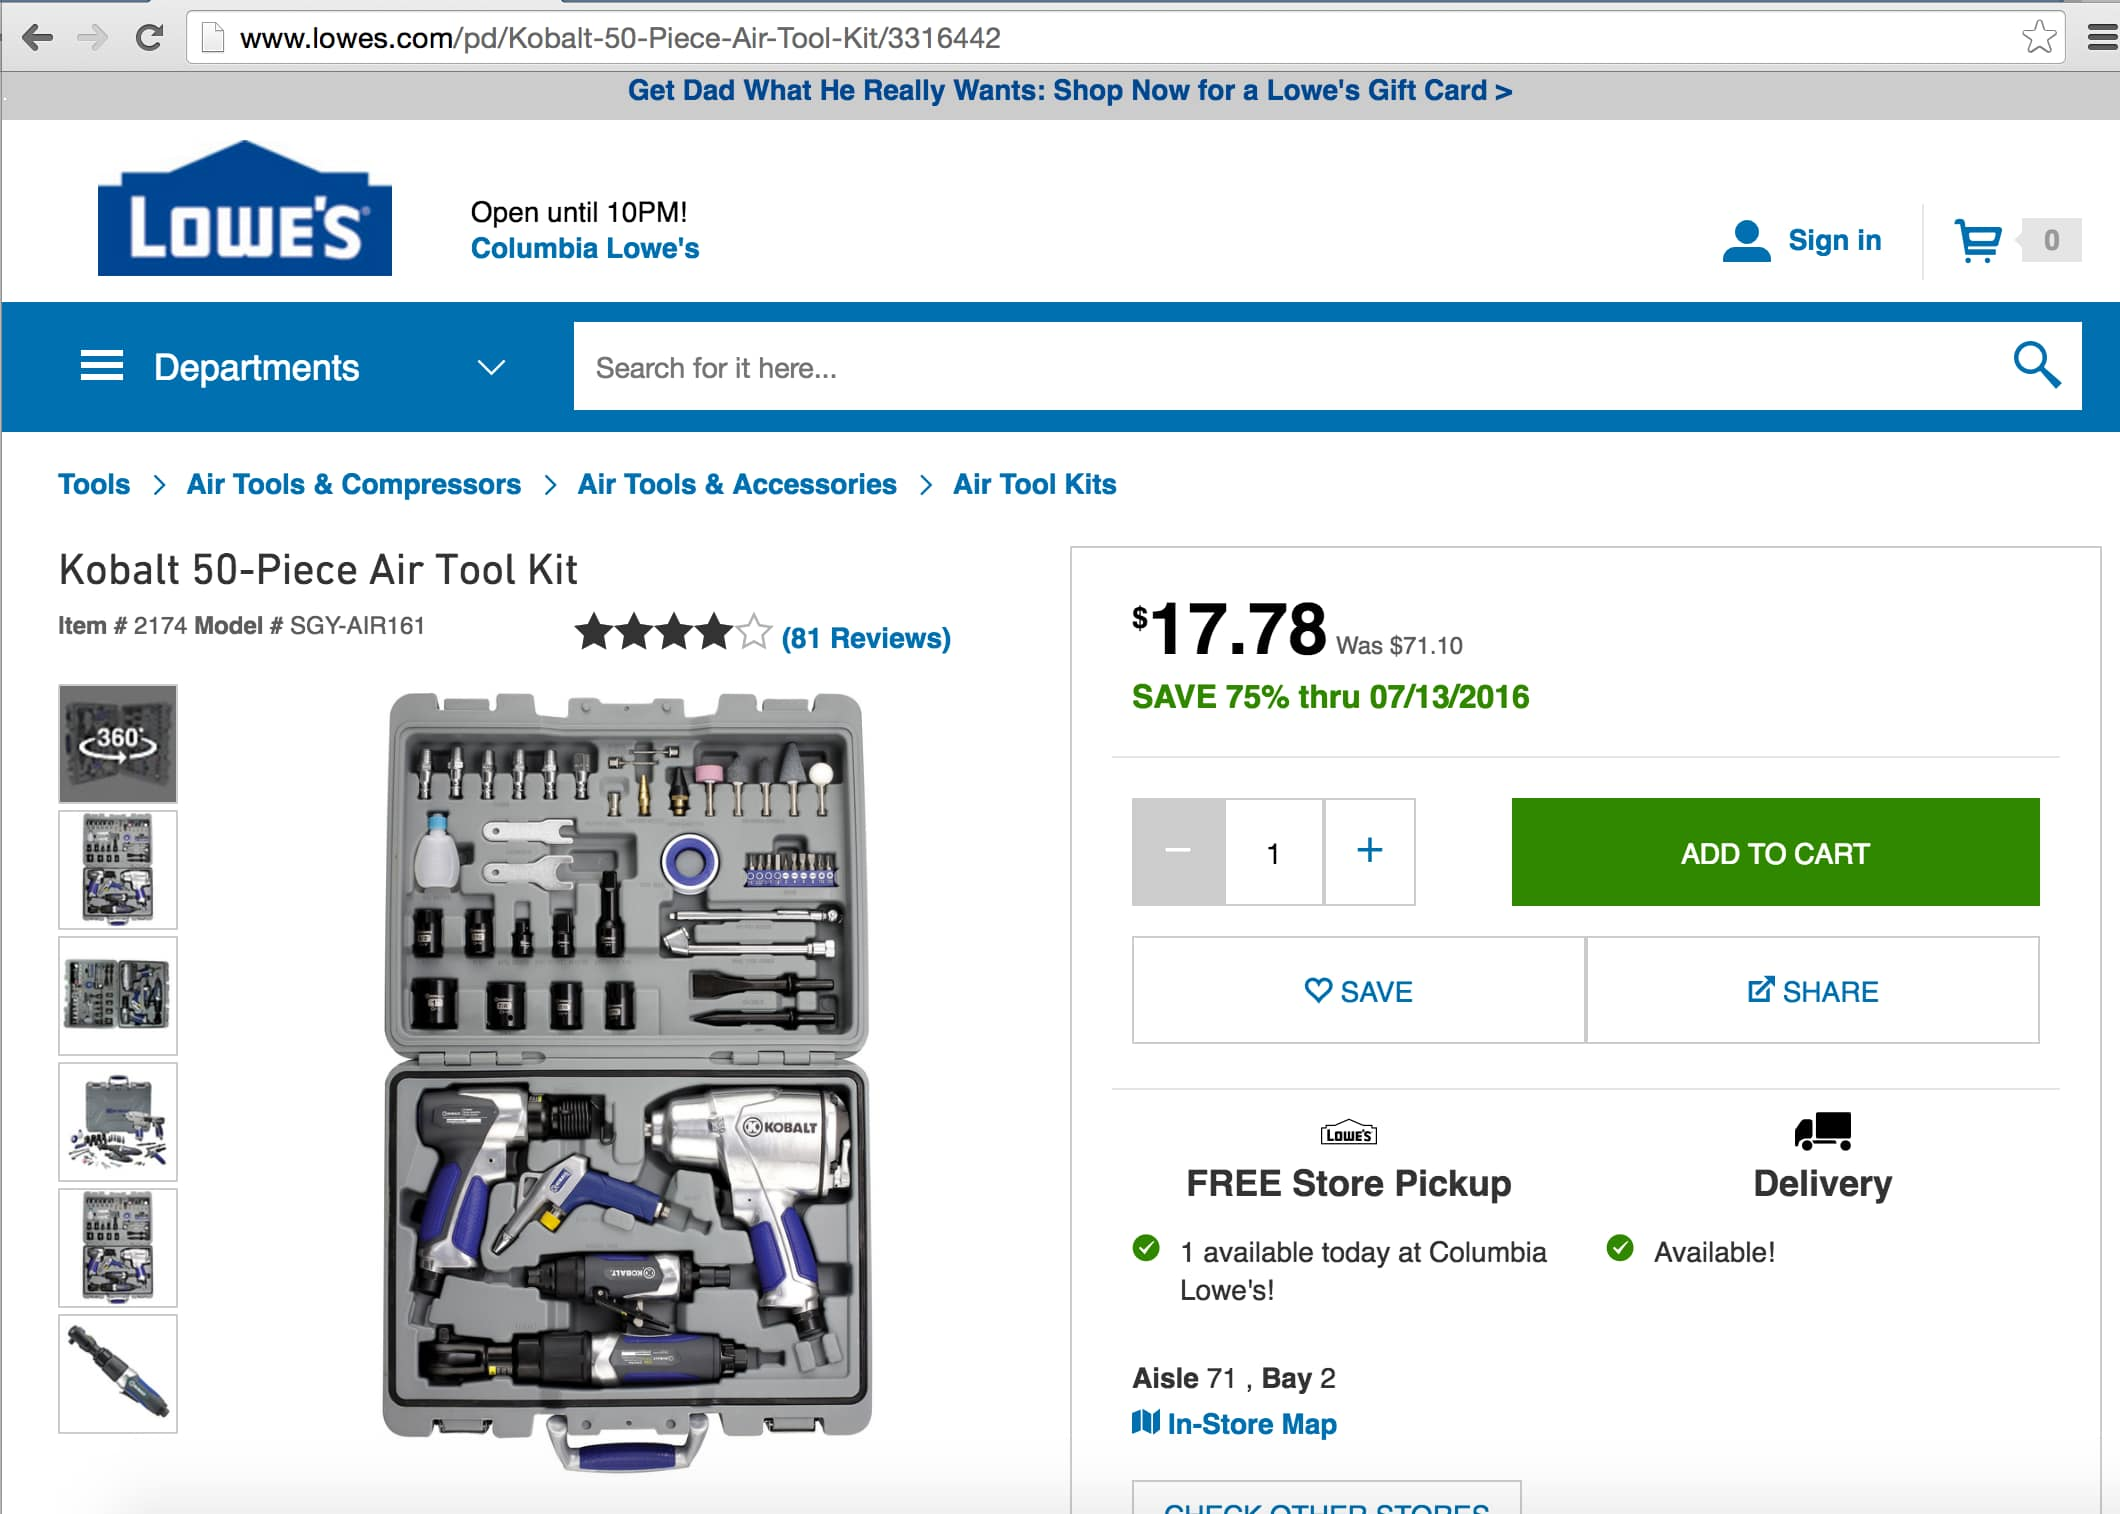 Kobalt 50-Piece Air Tool Kit for $17.78 YMMV